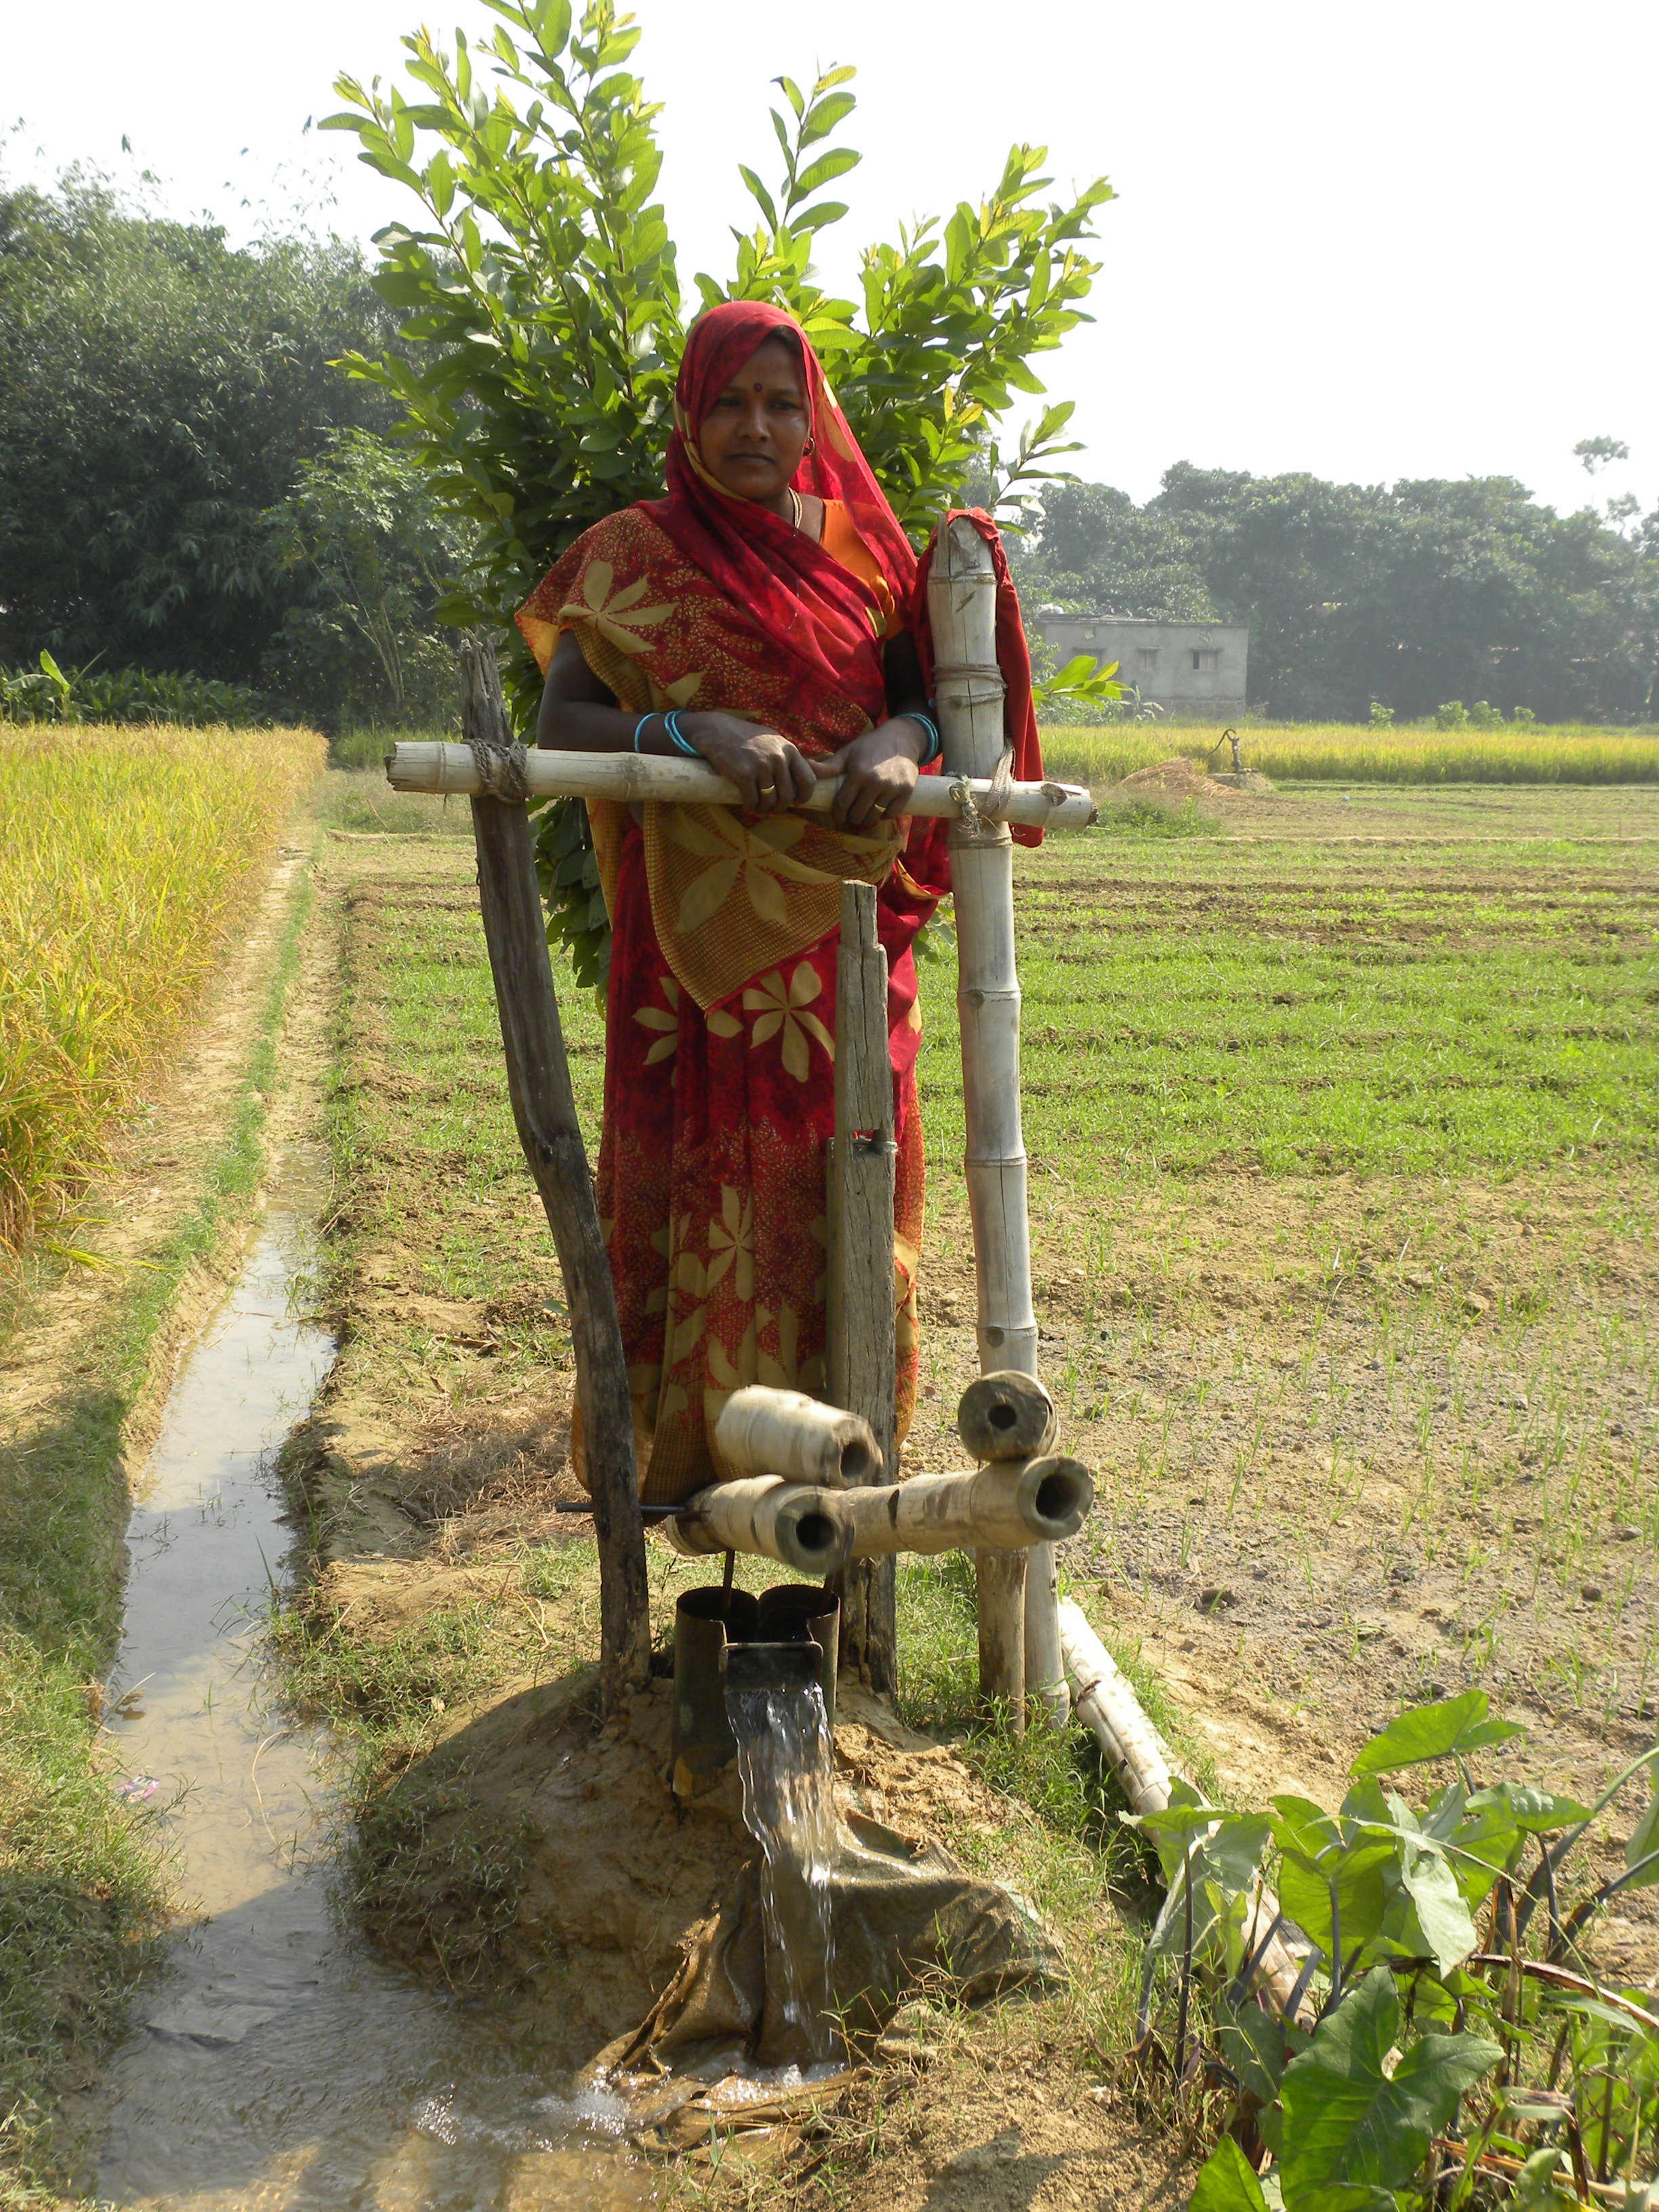 Treadle pumps have become an easy no-cost solution for irrigating fields.